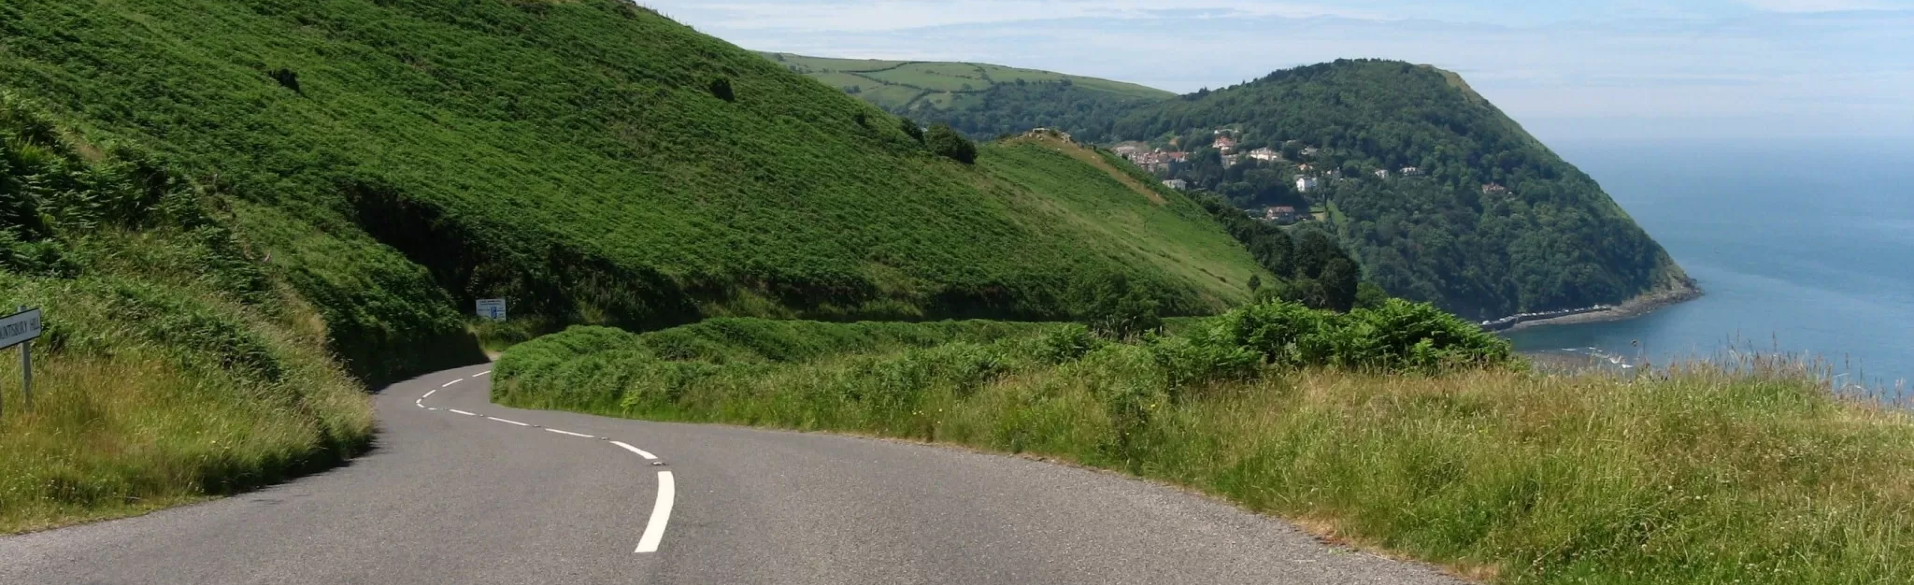 Best Driving Roads Along The Quantock Hills and Exmoor